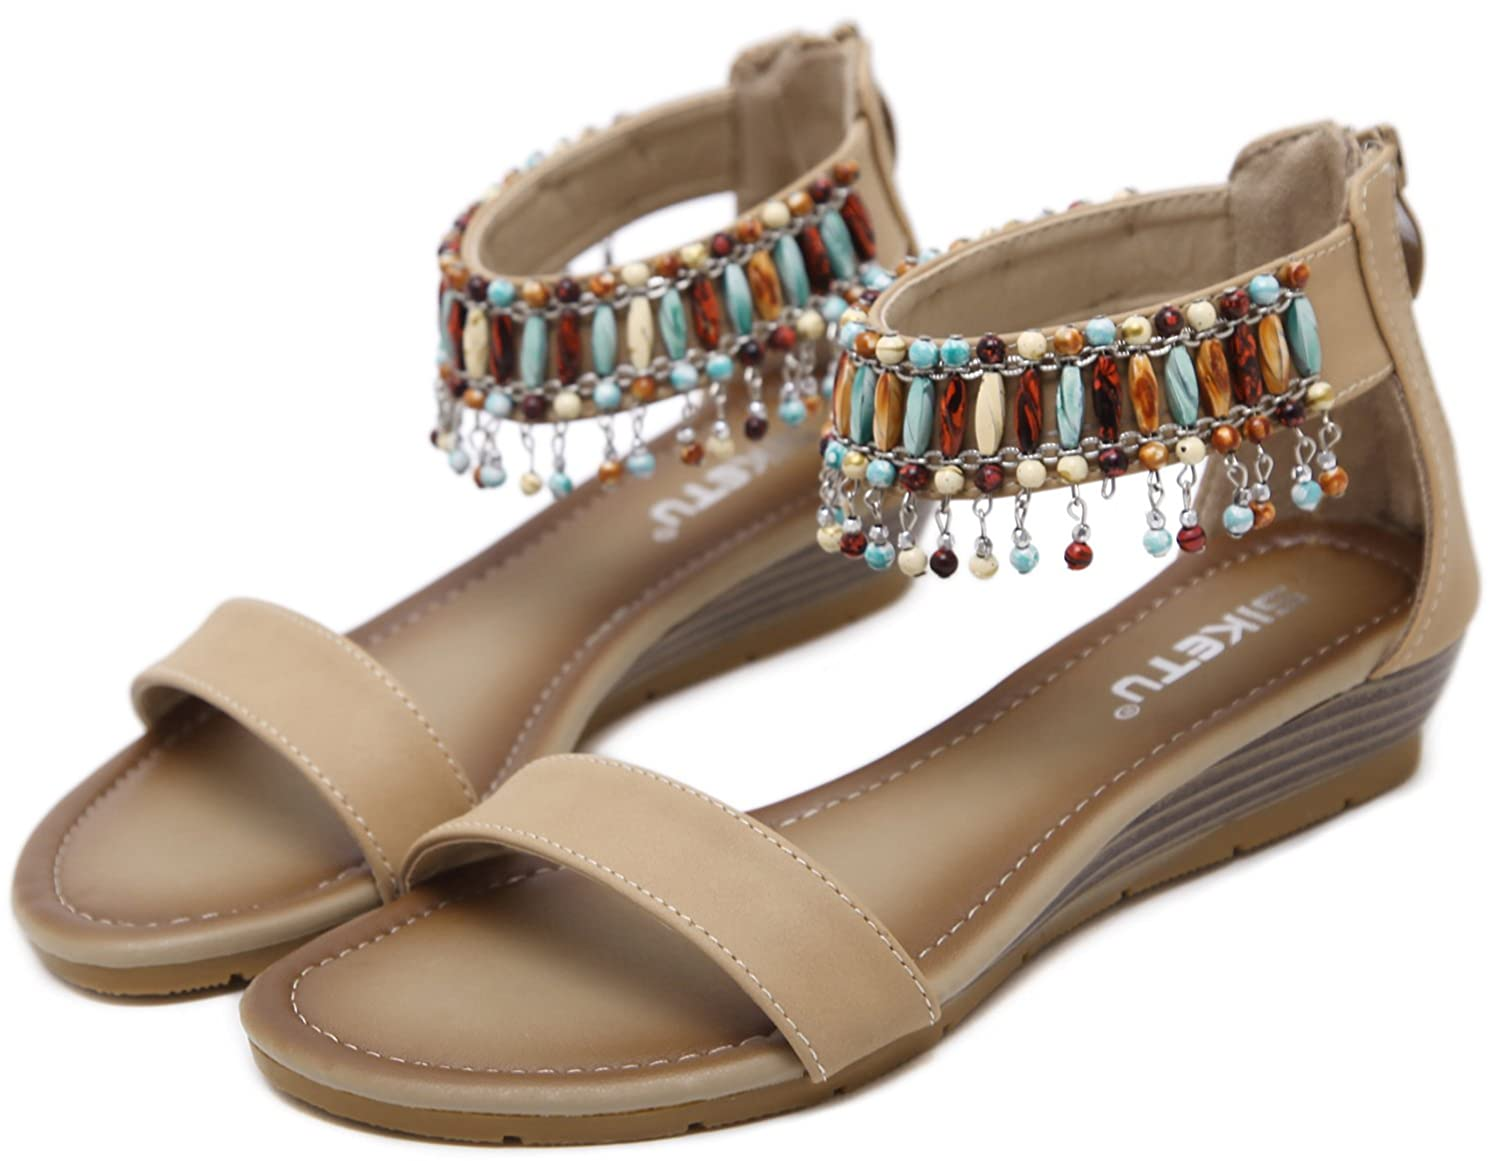 62d7fd964 DolphinGirl Bohemian Summer Tribal Flat Sandals Toe Strap Pendants Prime  Shoes - Casual Women s Shoes